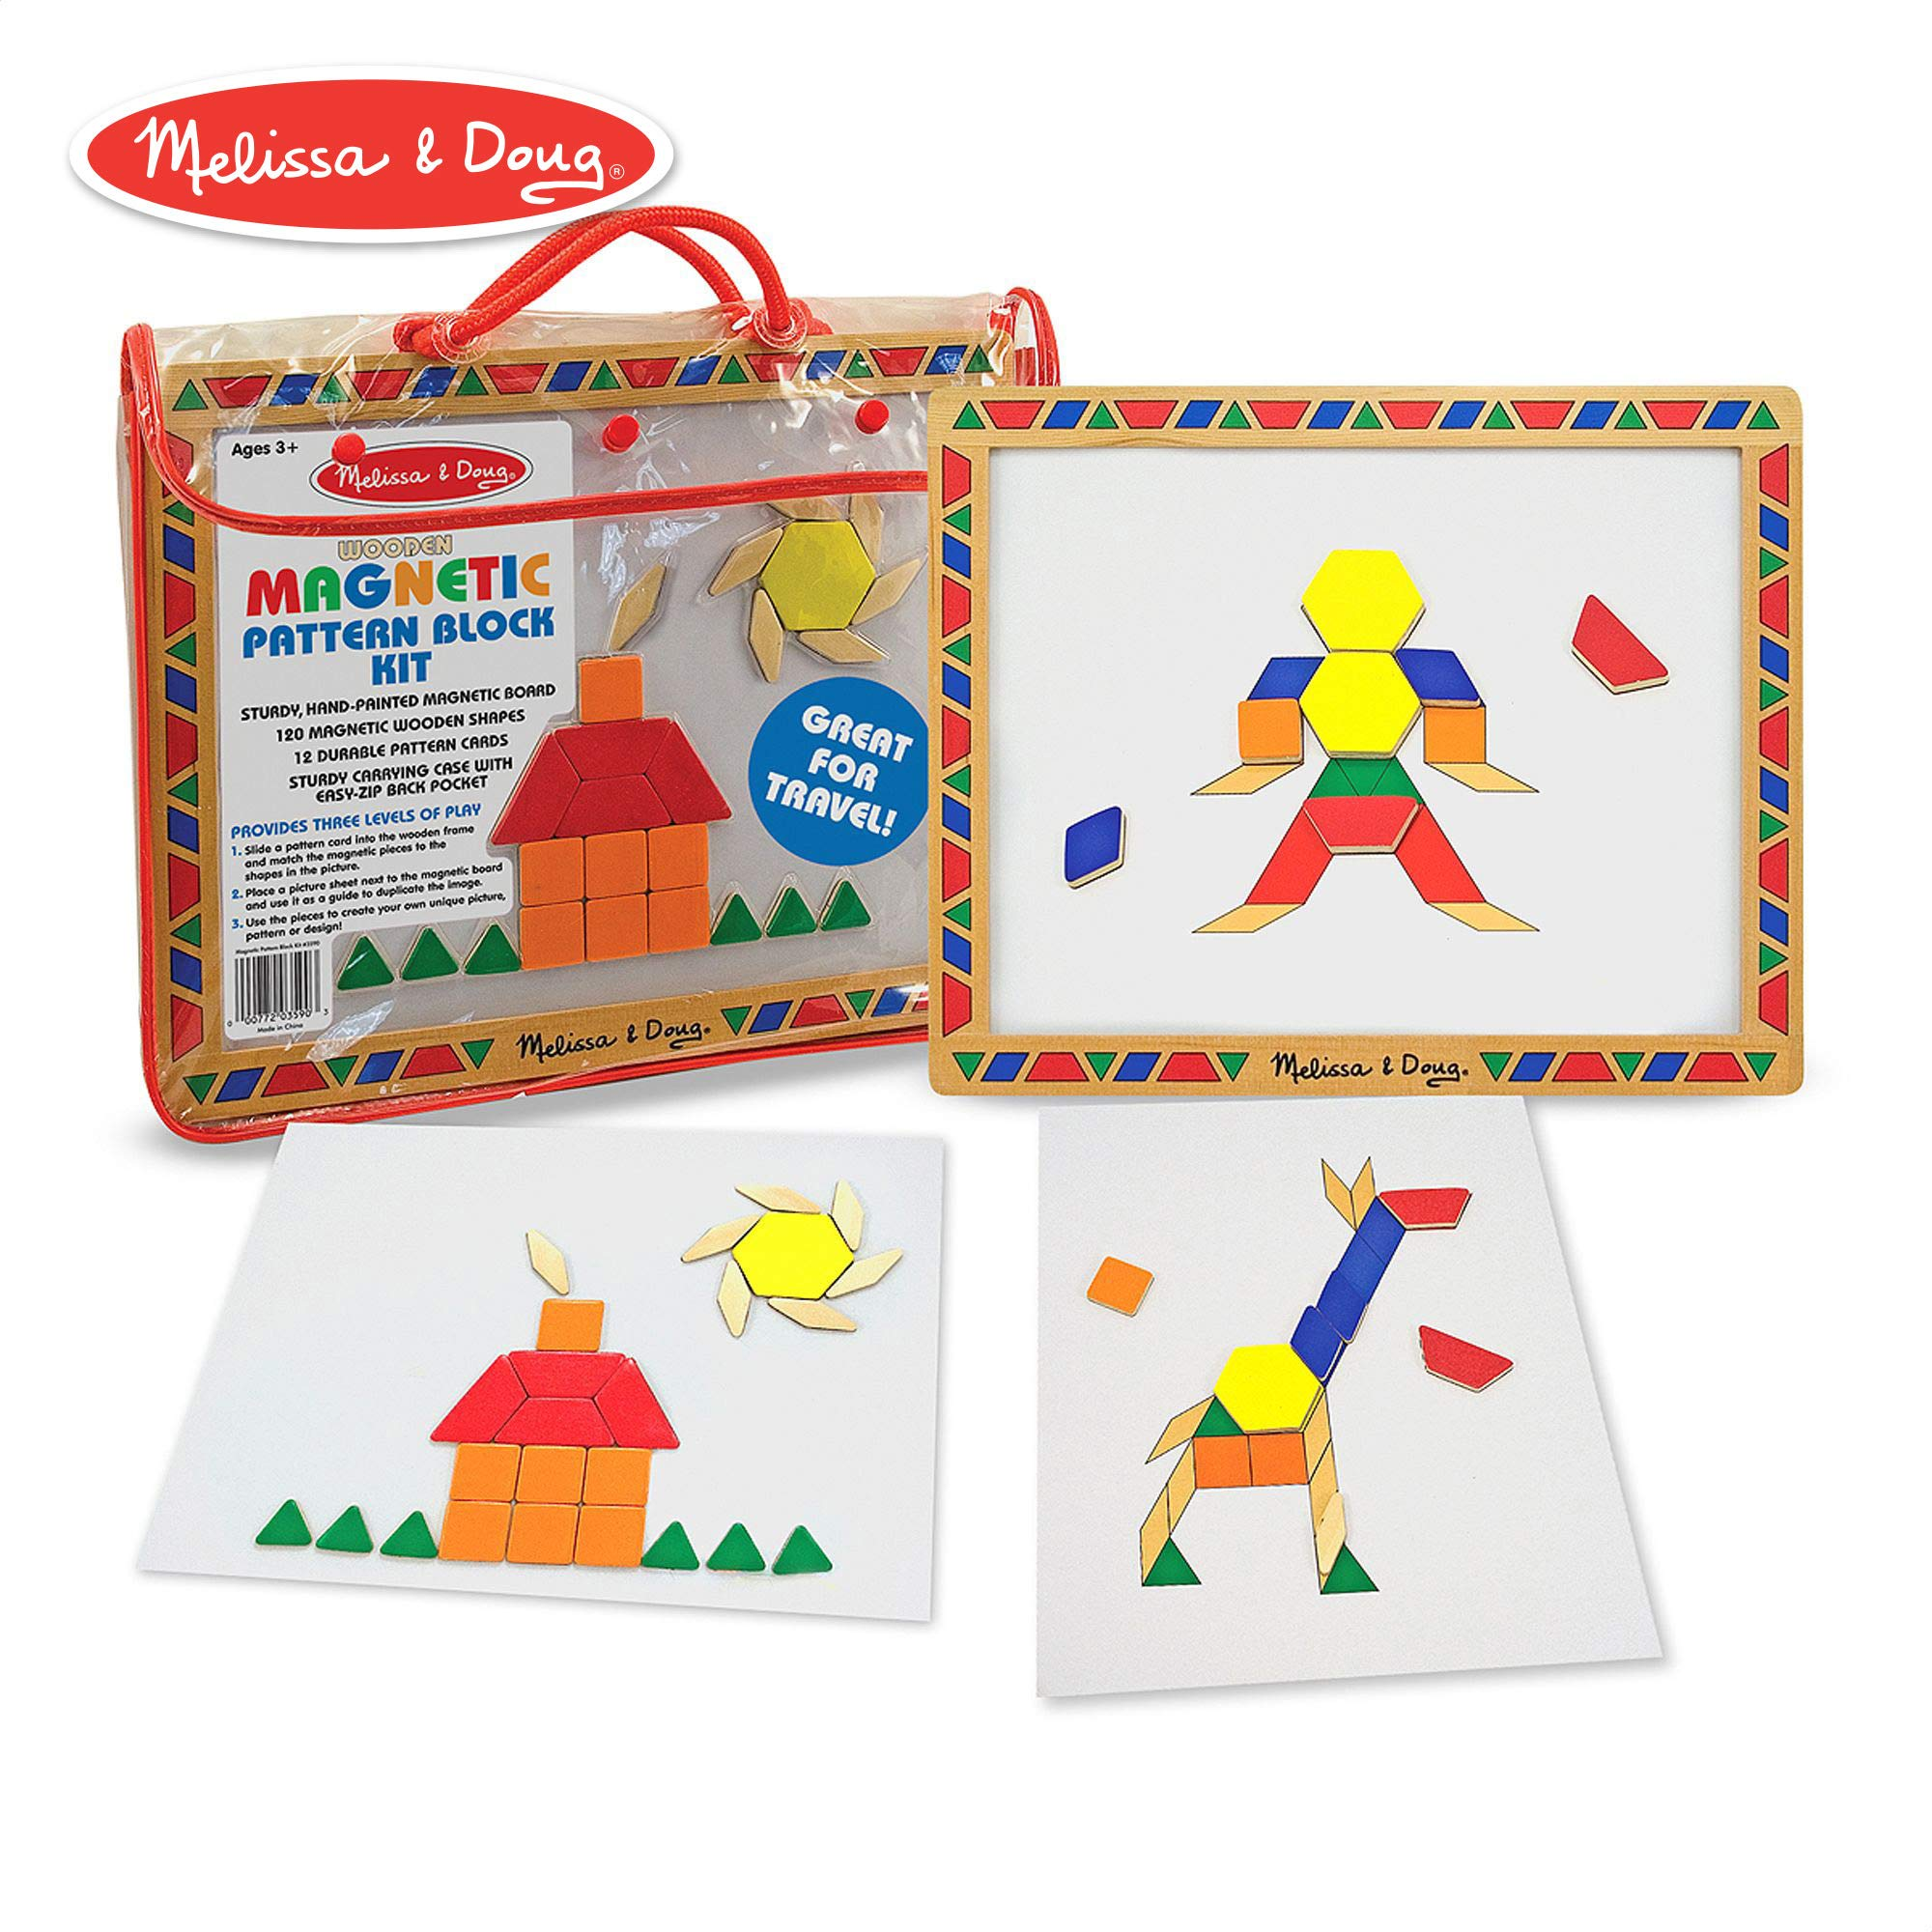 Melissa & Doug Magnetic Pattern Blocks Set, Developmental Toys, Sturdy Wooden Play Board, Carrying Case, 120 Pieces, 14.5'' H x 12.5'' W x 1.5'' L by Melissa & Doug